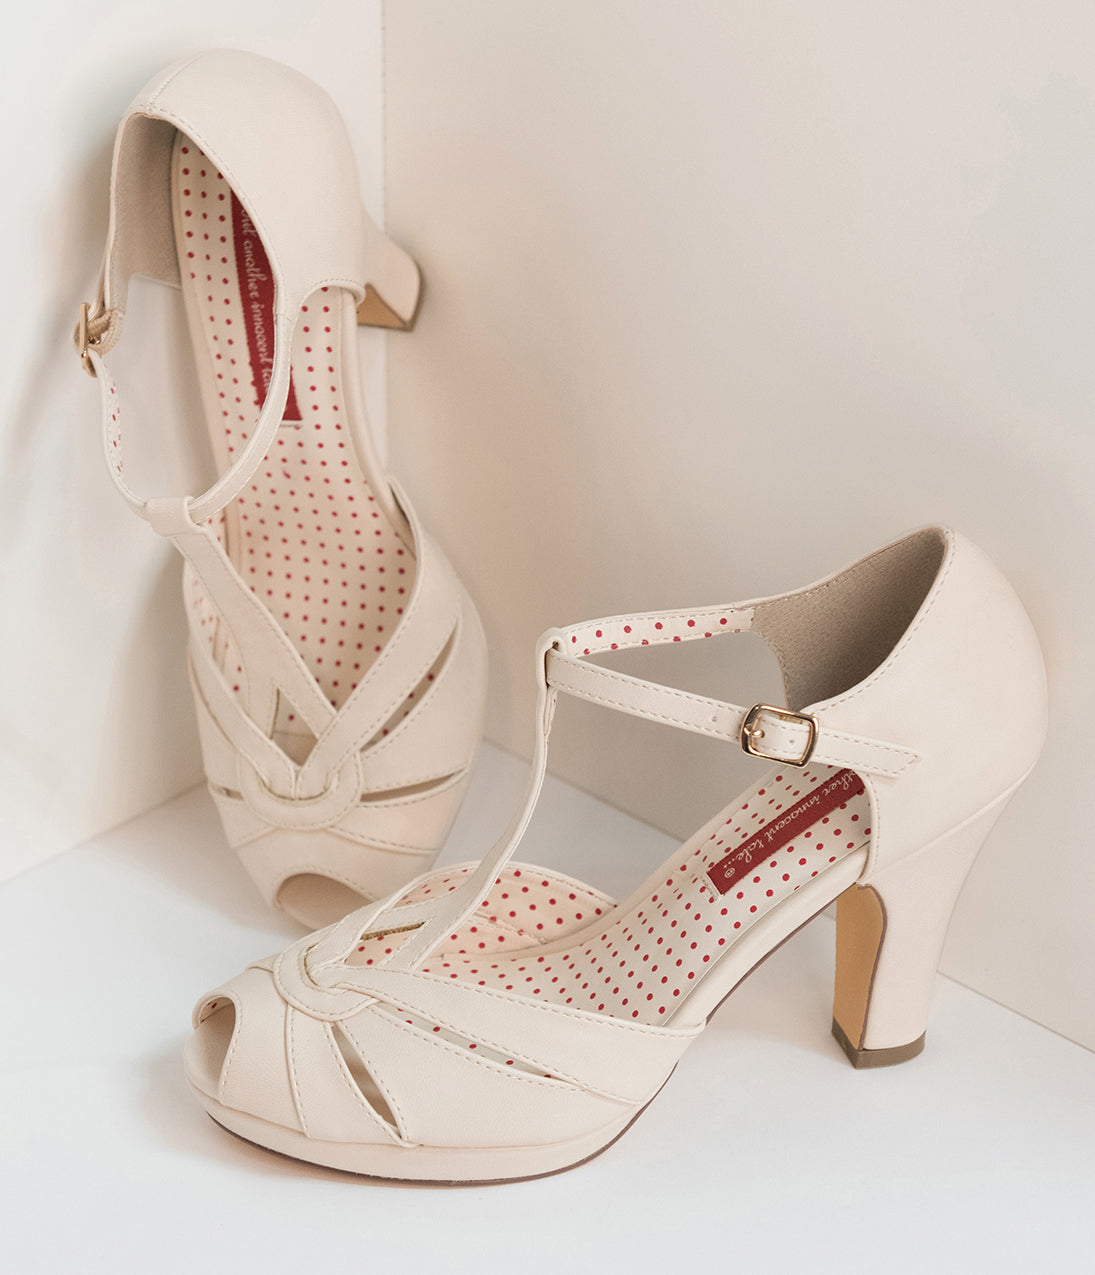 1920s Style Shoes B.a.i.t. Cream Ivory Leatherette Peep Toe T-Strap Lacey Heels $76.00 AT vintagedancer.com